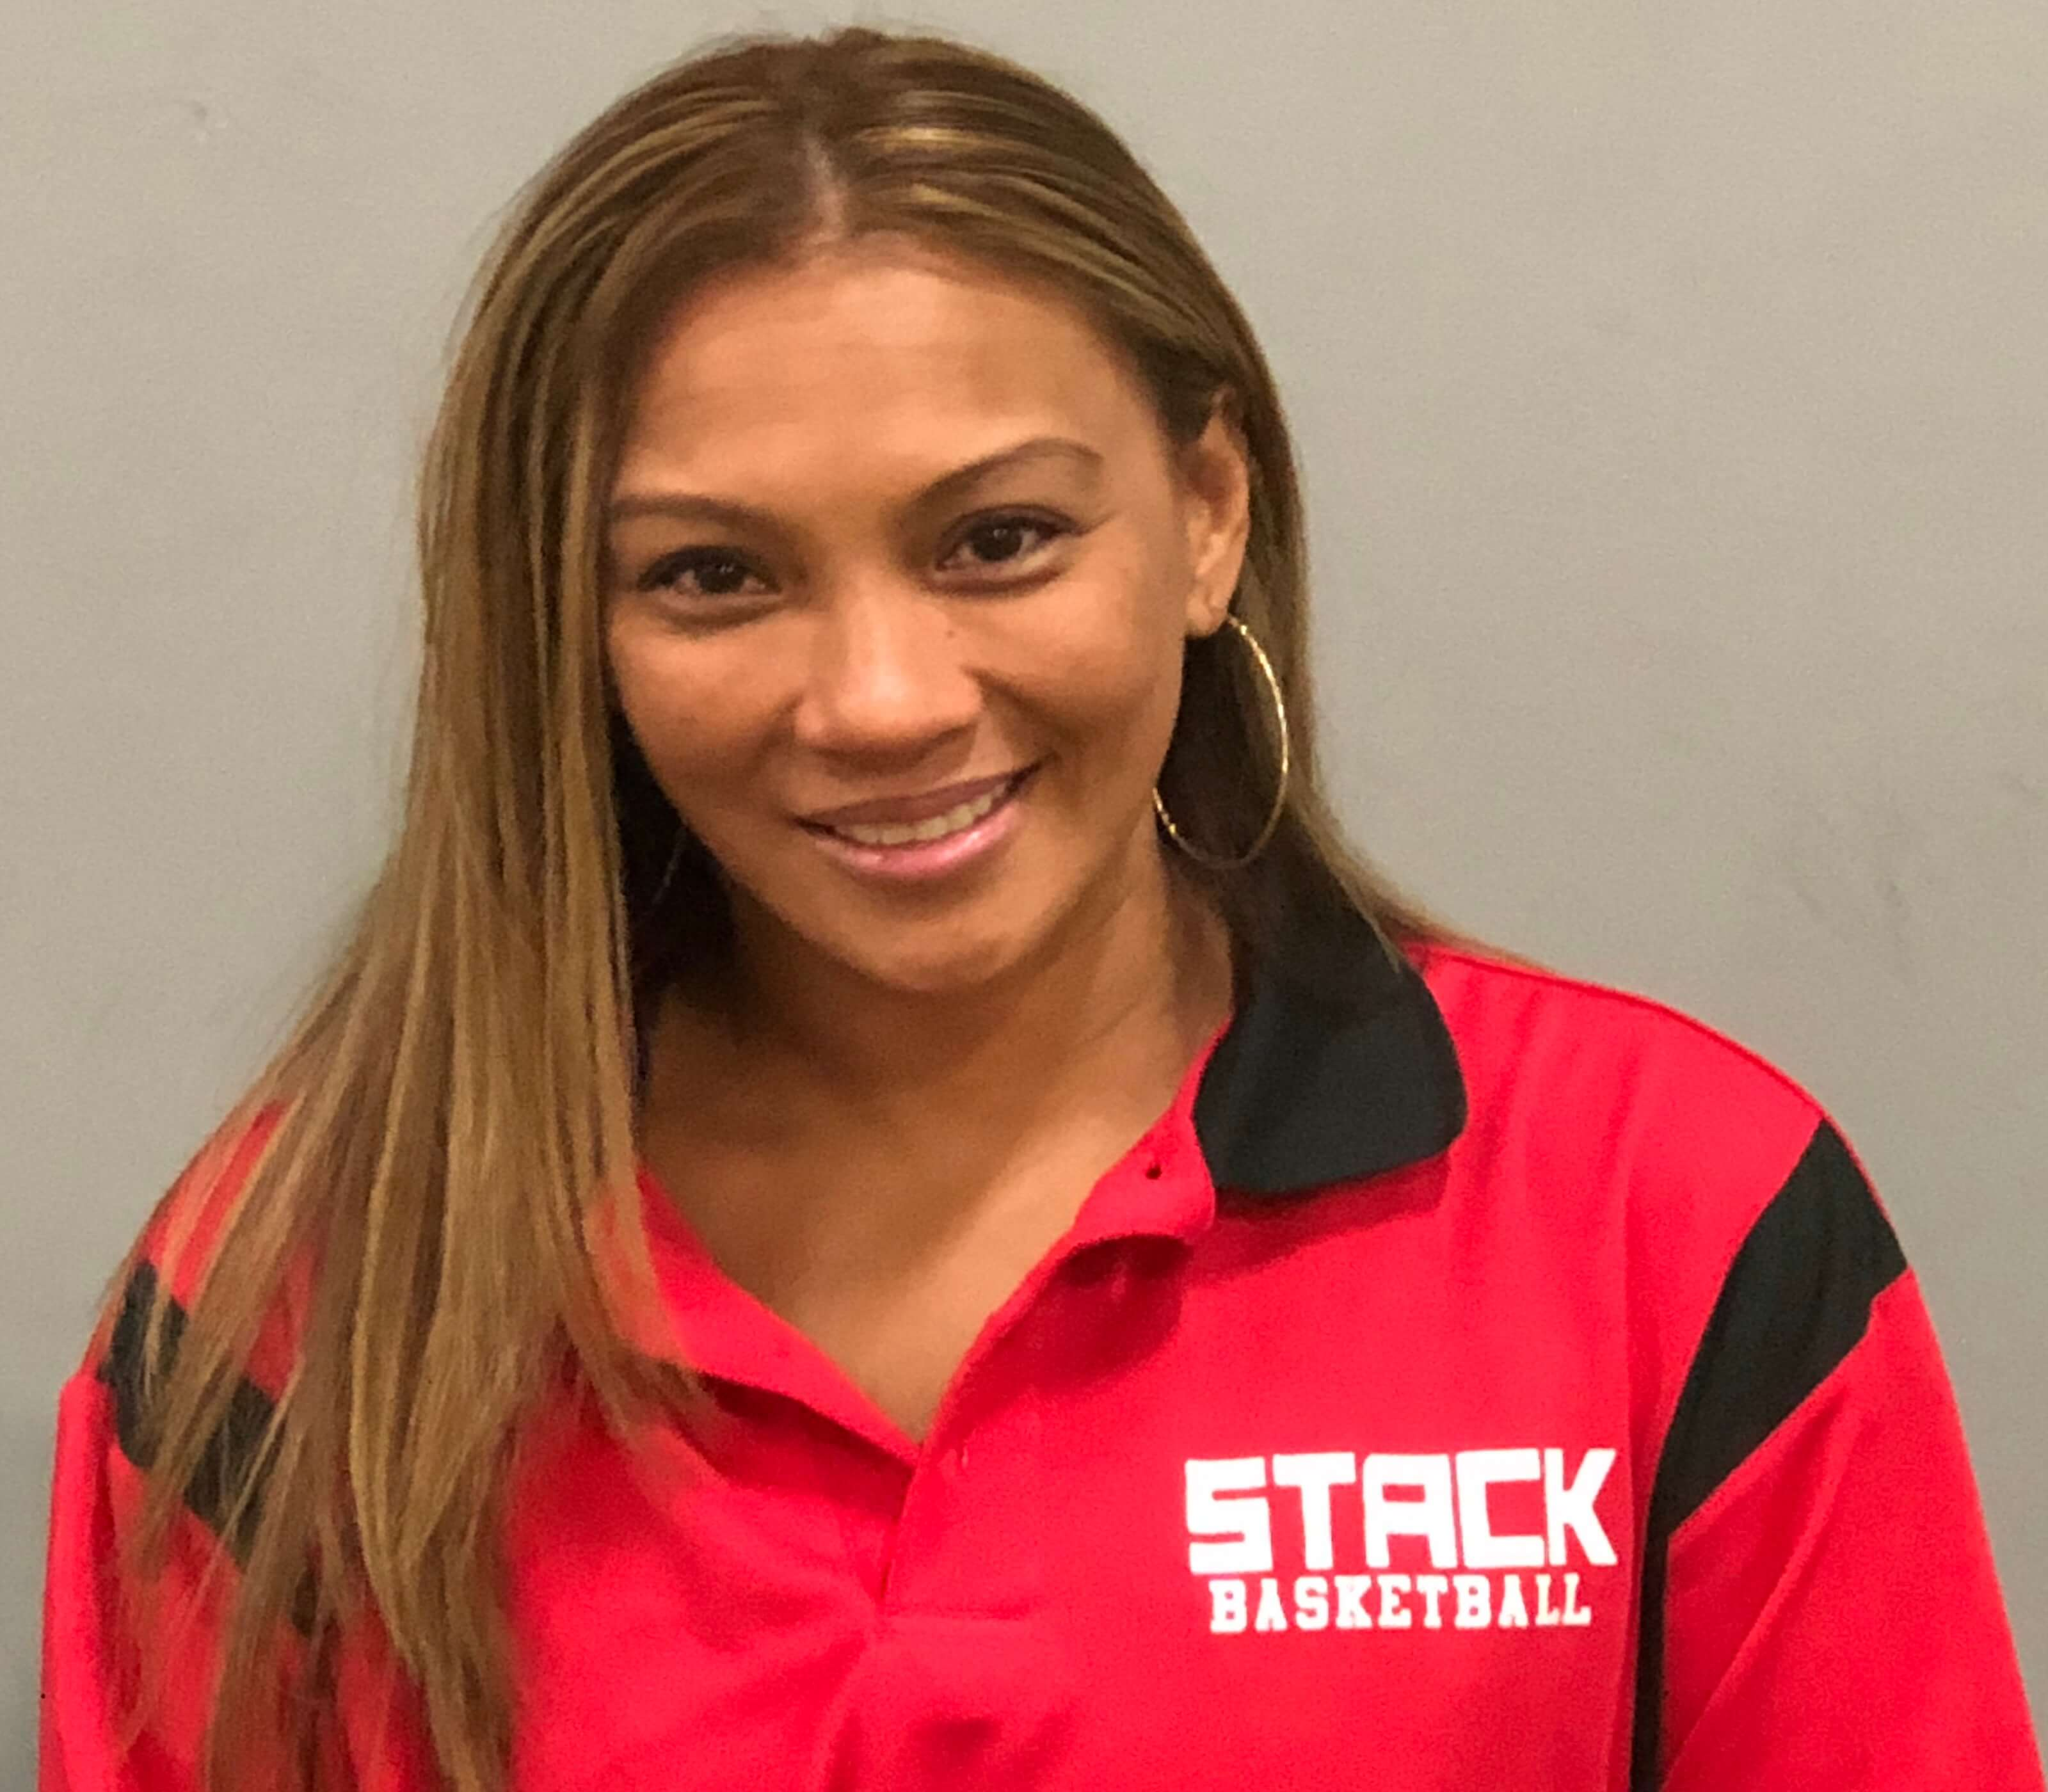 Maria Harper Basketball Coach and Trainer STACK AAU Basketball